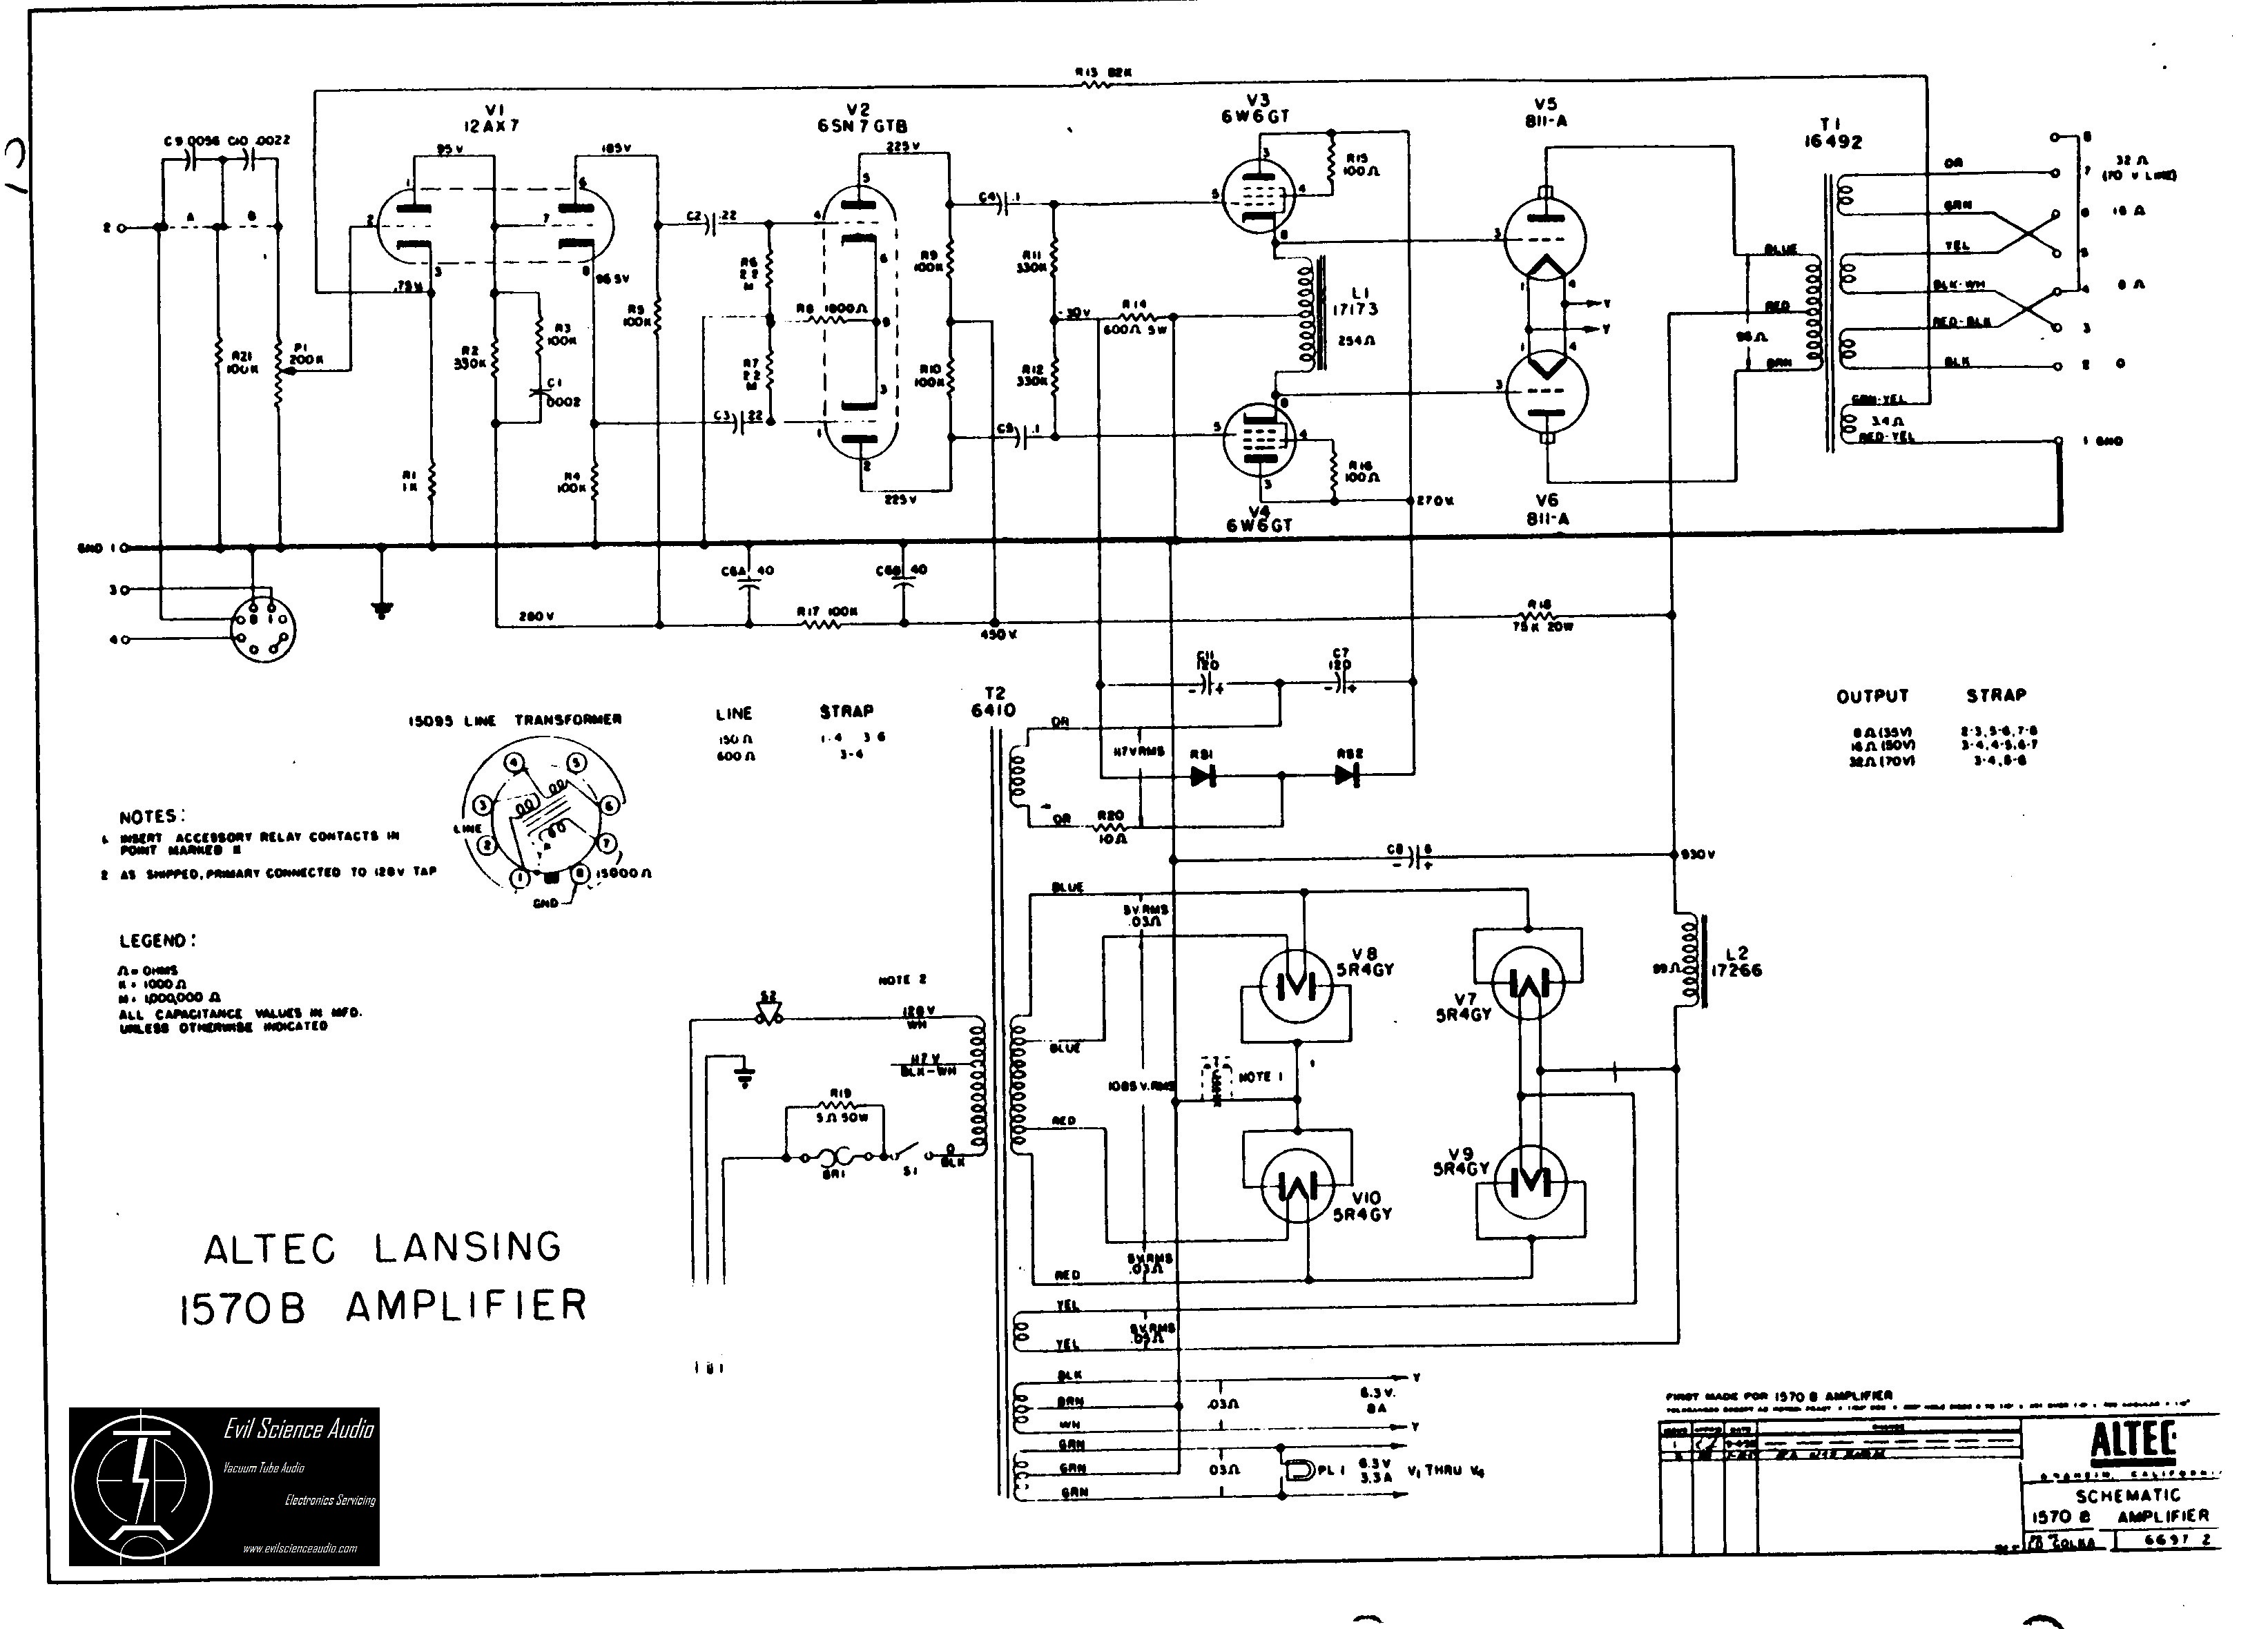 altec lansing 1570b schematic hi fi schematics evil science audio Altec Bucket Wiring-Diagram at n-0.co